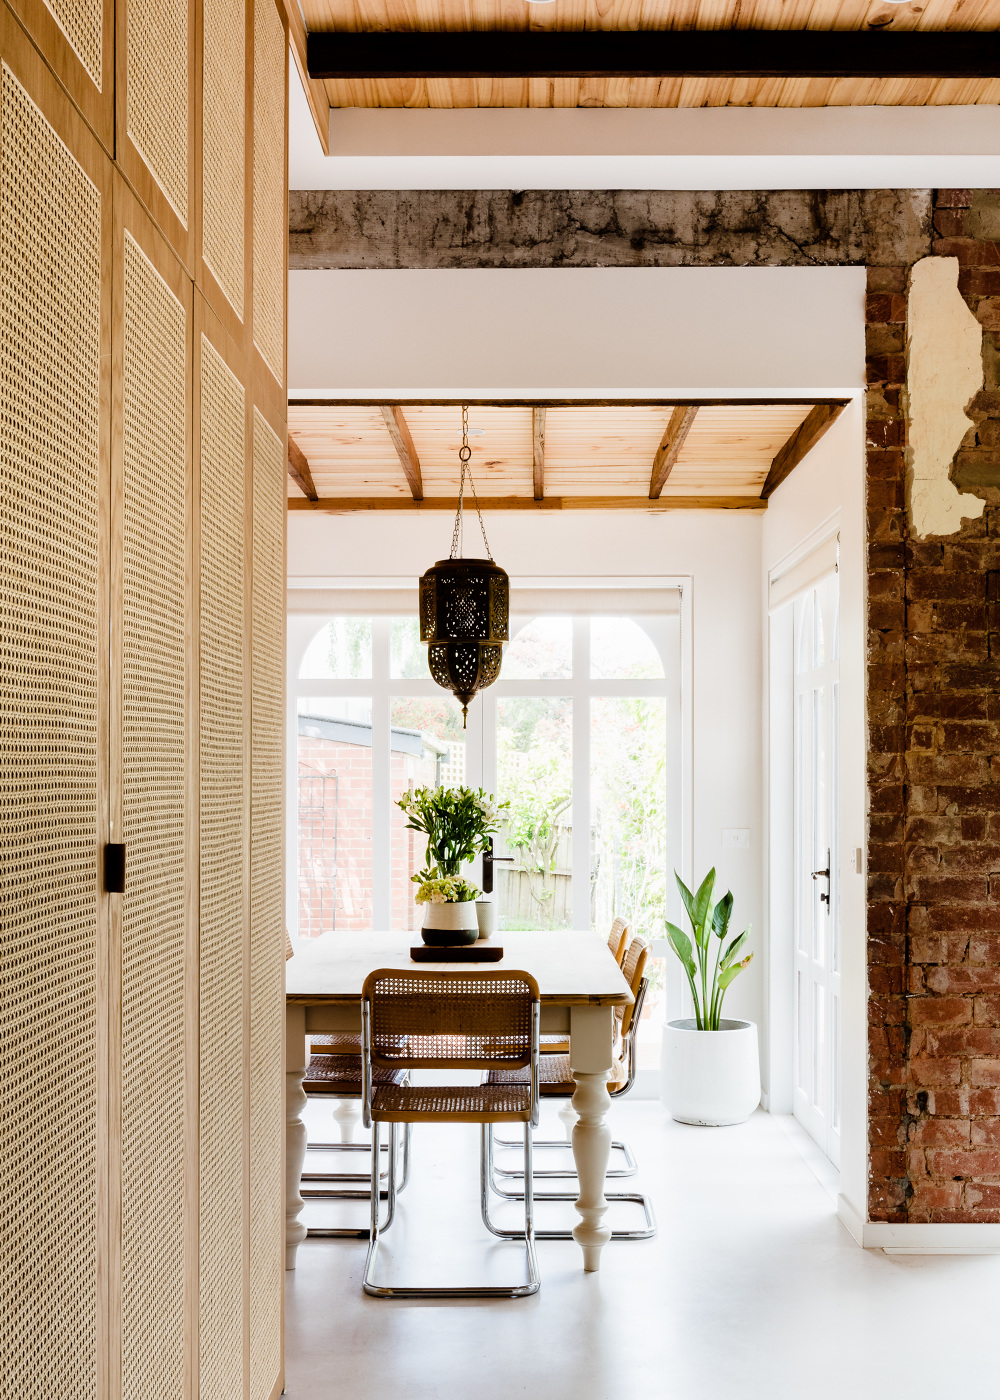 Gabbe Interior Design Amelia Stanwix Photography Melbourne Based Lifestyle And Portrait Photographer